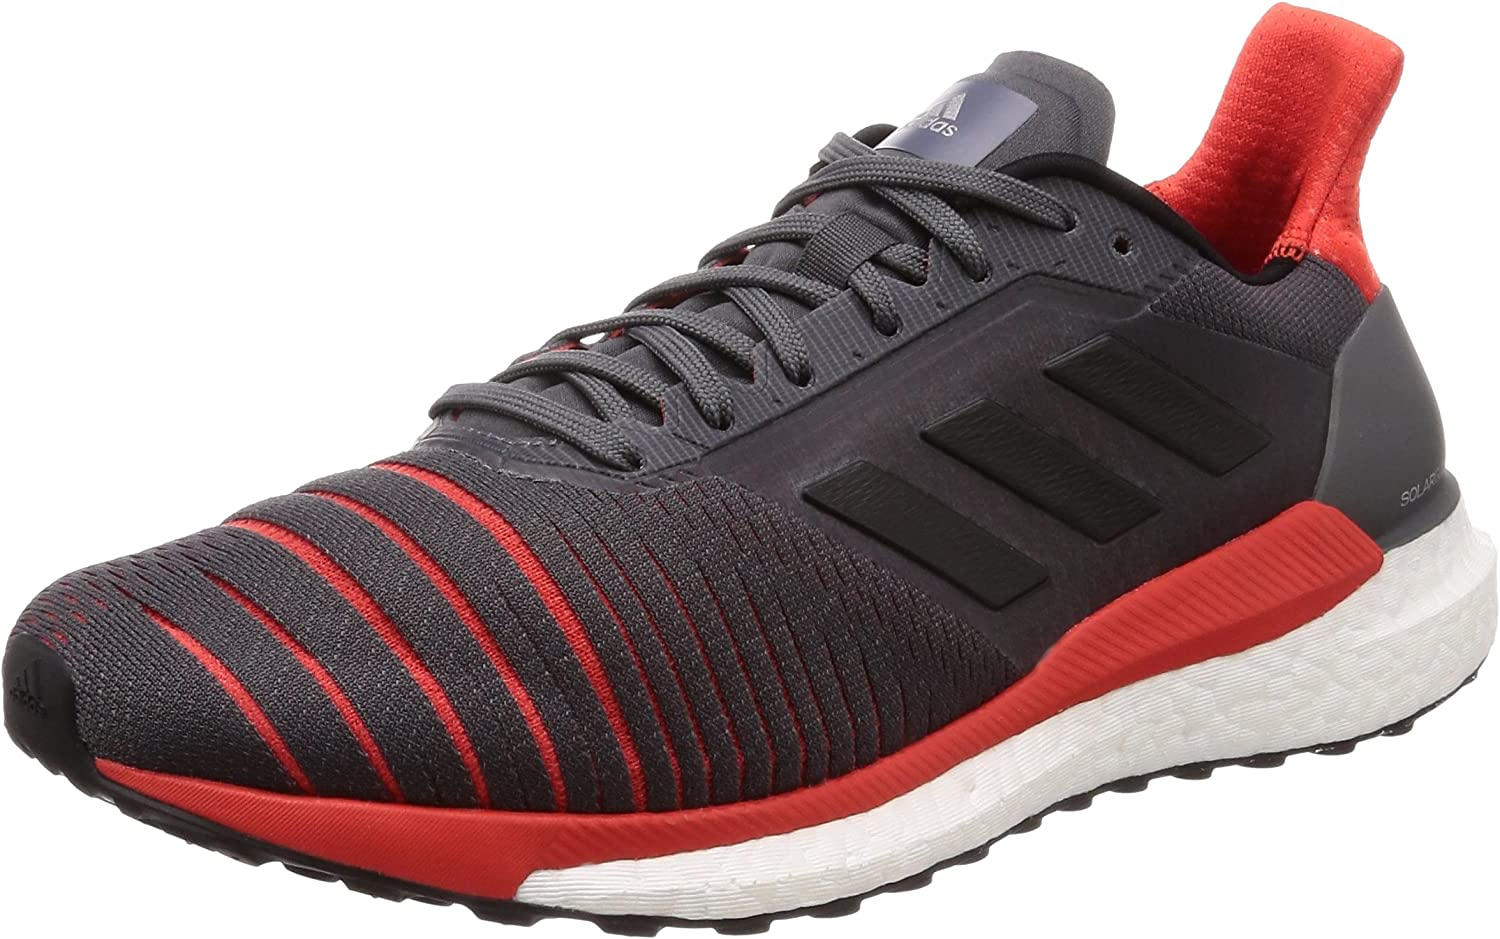 Adidas Men's Solar Glide M Competition Running shoes